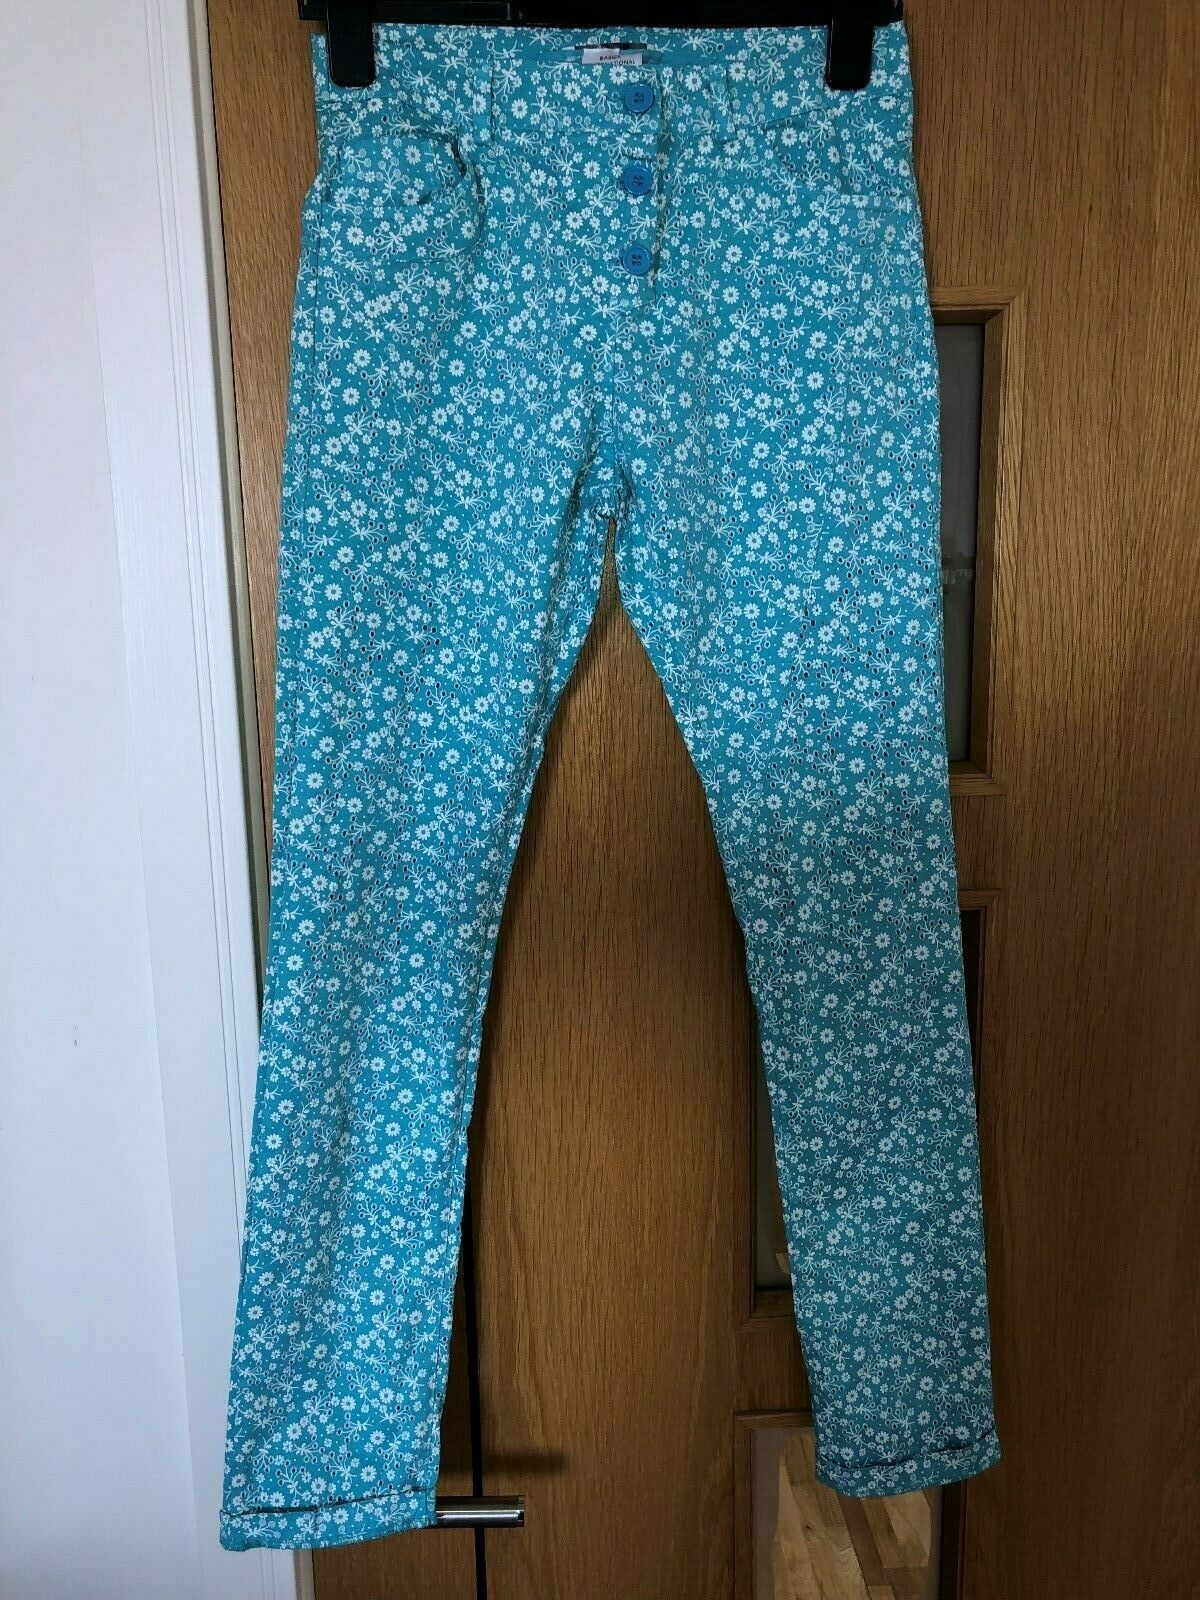 Angela Mele Milano Italian Turquoise and White Floral Stretch Jeans Trousers